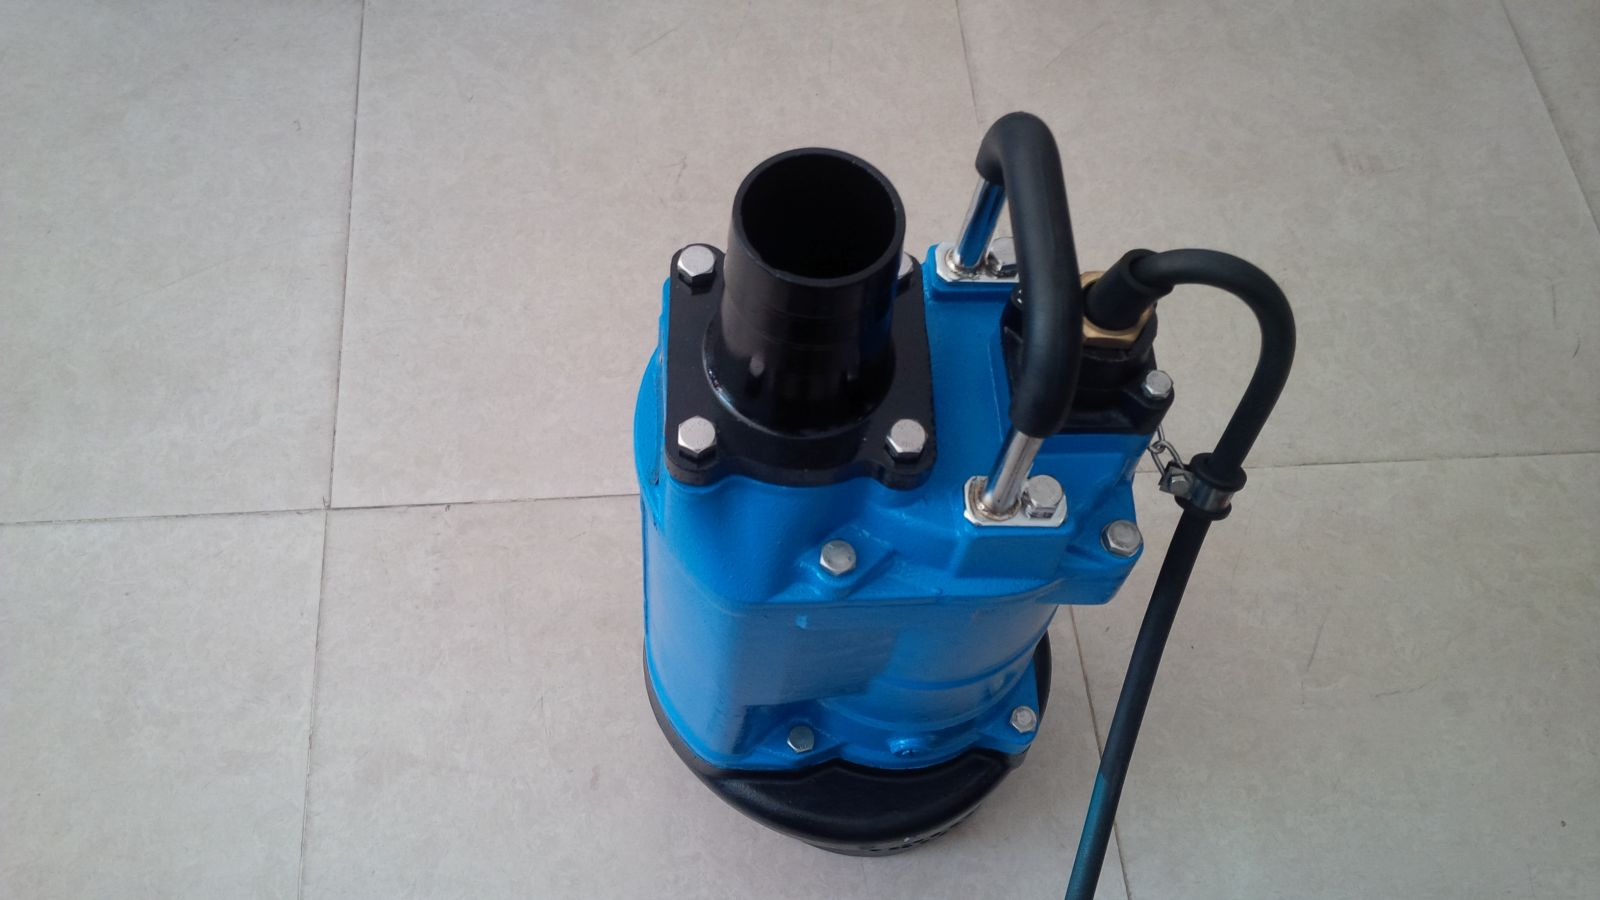 Industrial Submersible Pumps Market - Bulletin Line